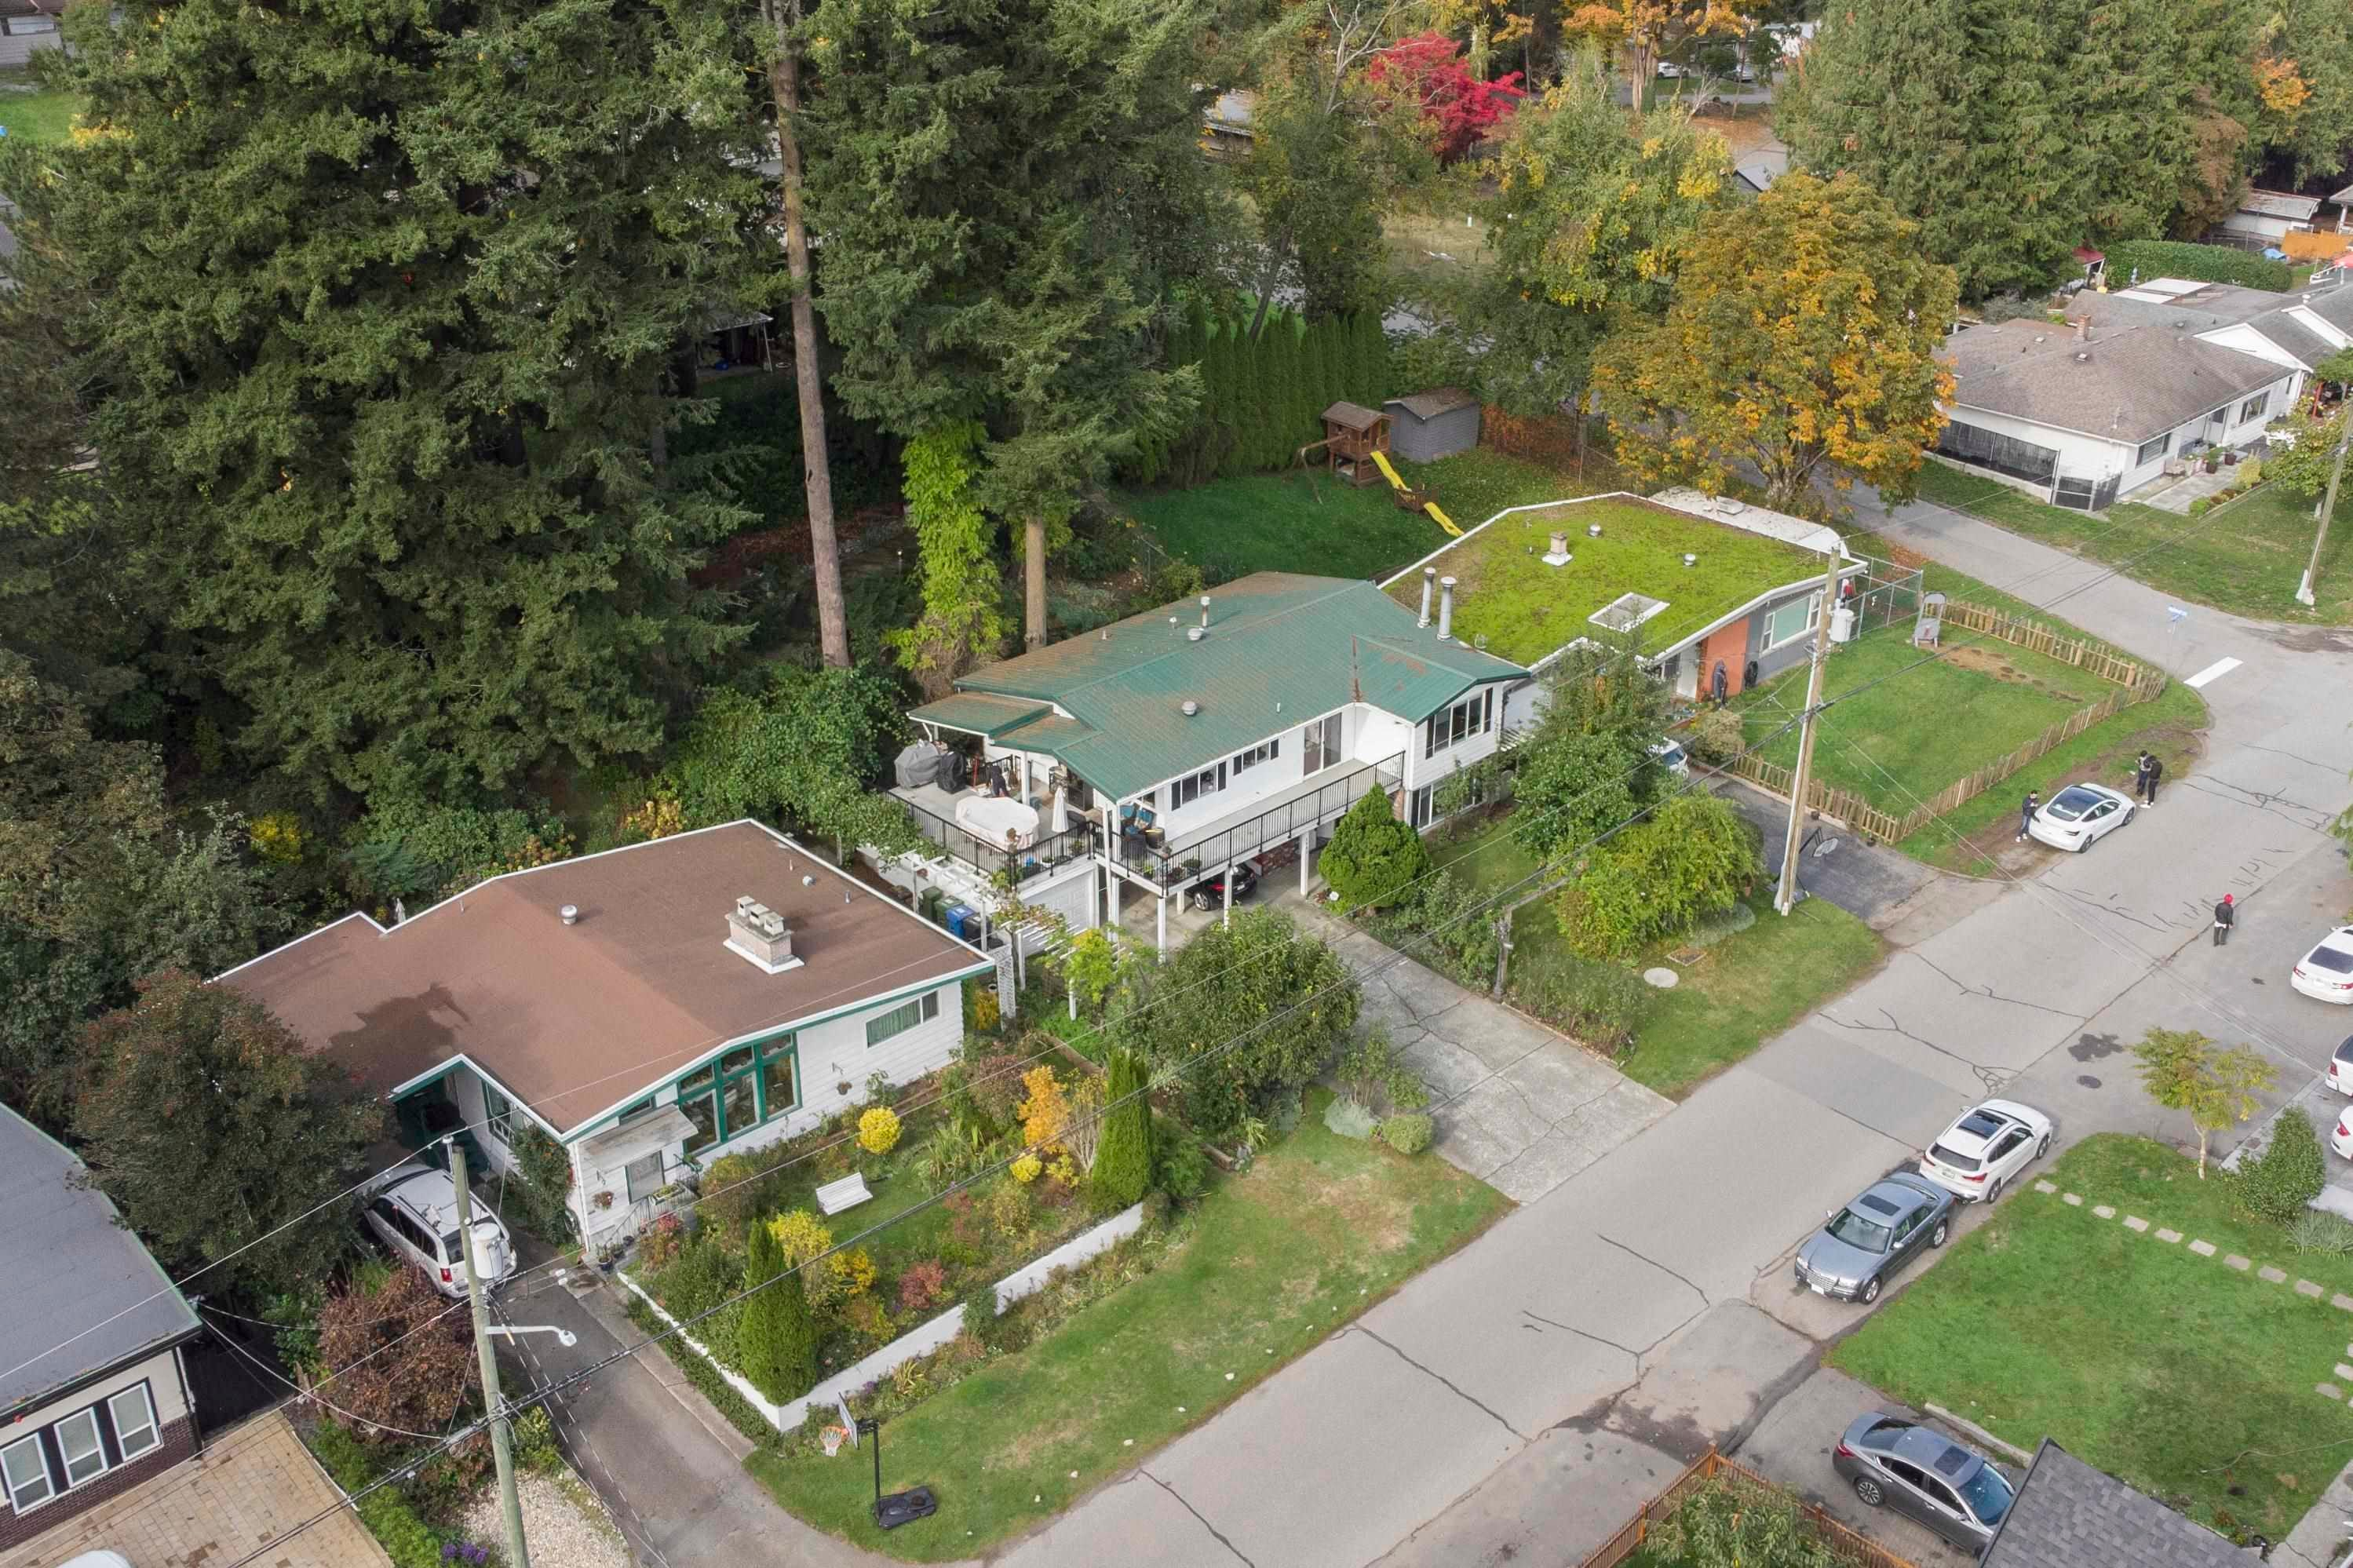 2887 EVERGREEN STREET - Central Abbotsford House/Single Family for sale, 3 Bedrooms (R2626153) - #1